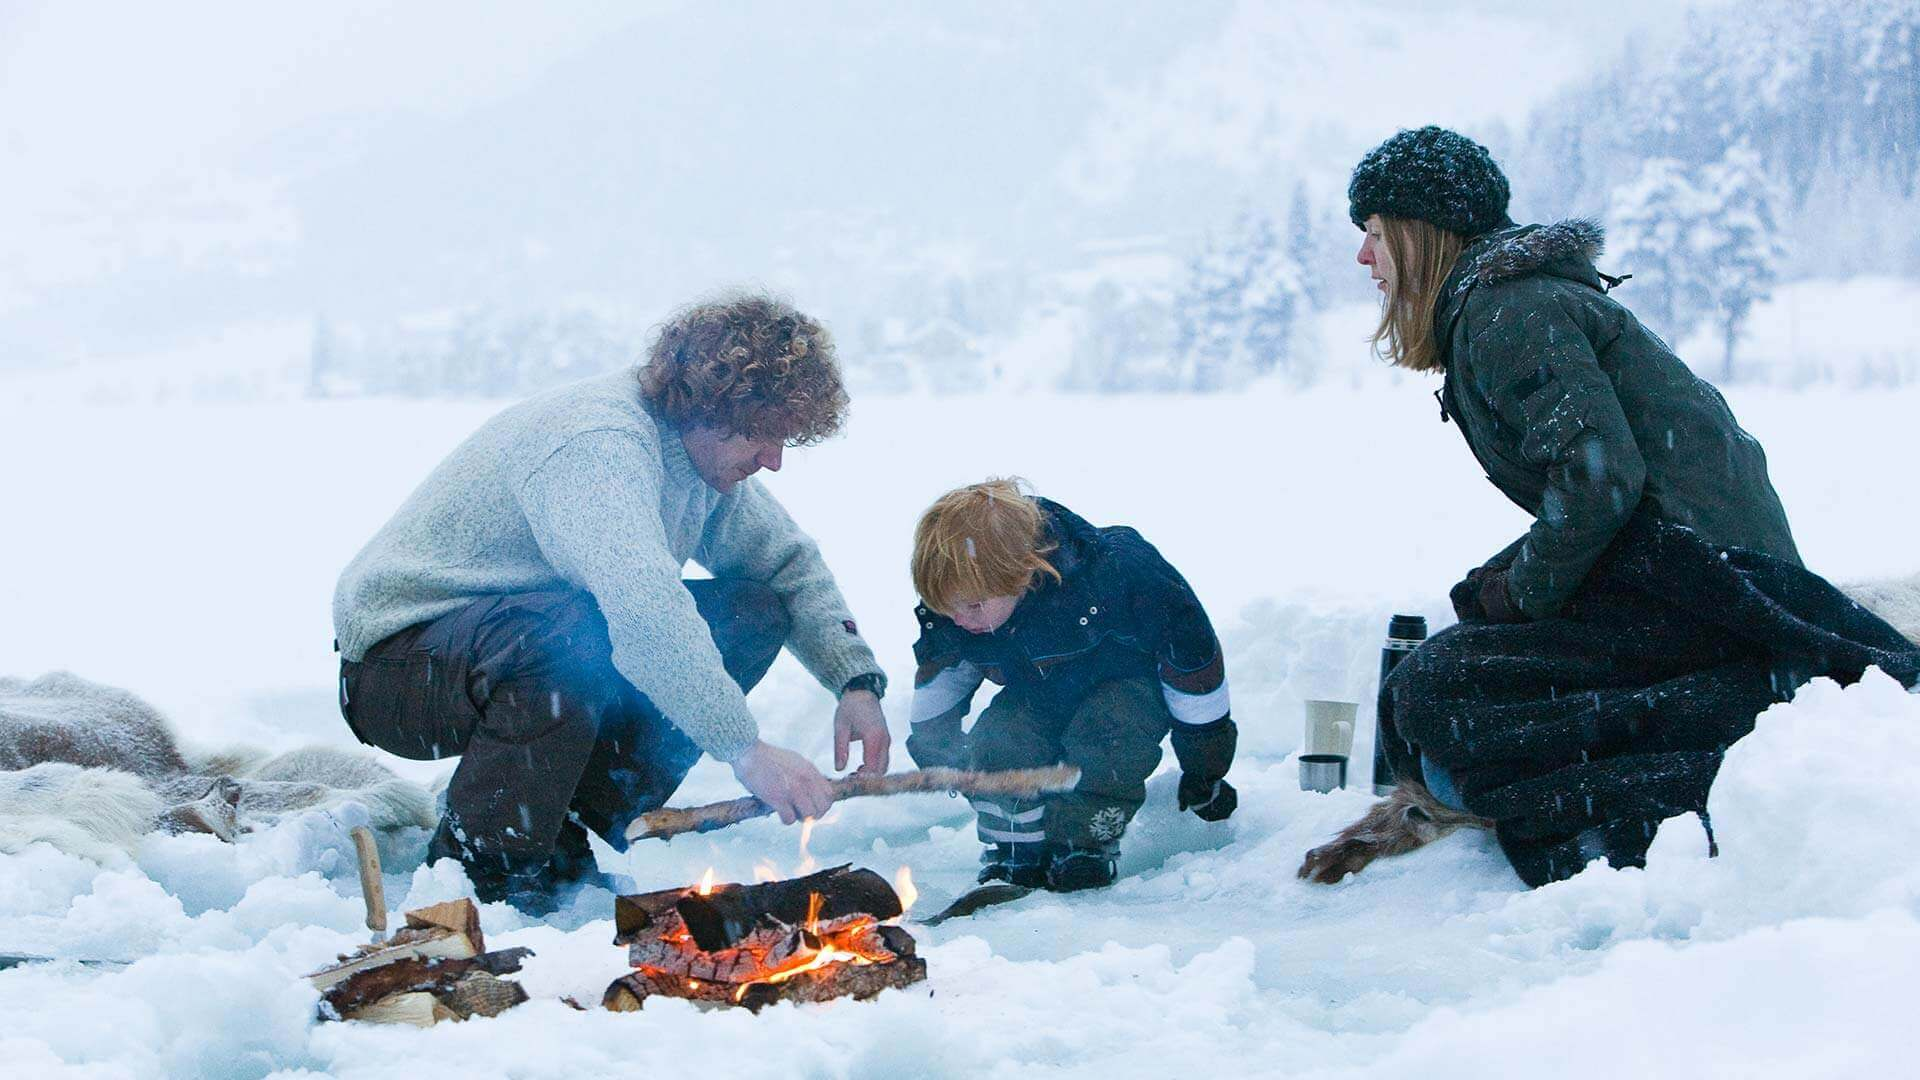 Ice fishing trip with Herangtunet in Norway